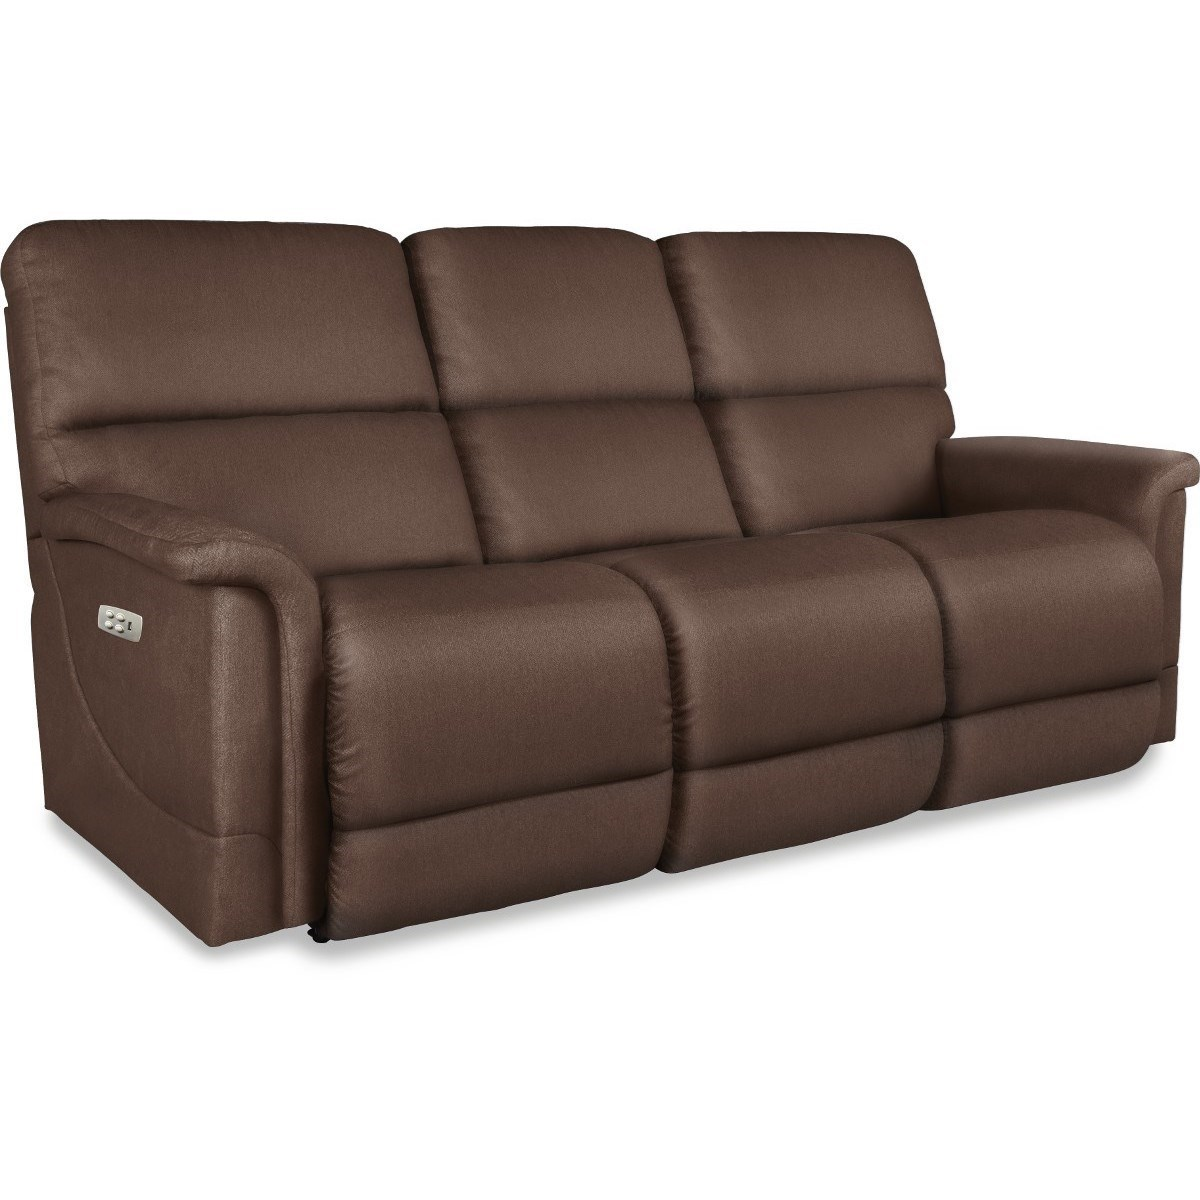 La Z Boy OscarPower Recline™ Sofa With Power Headrest